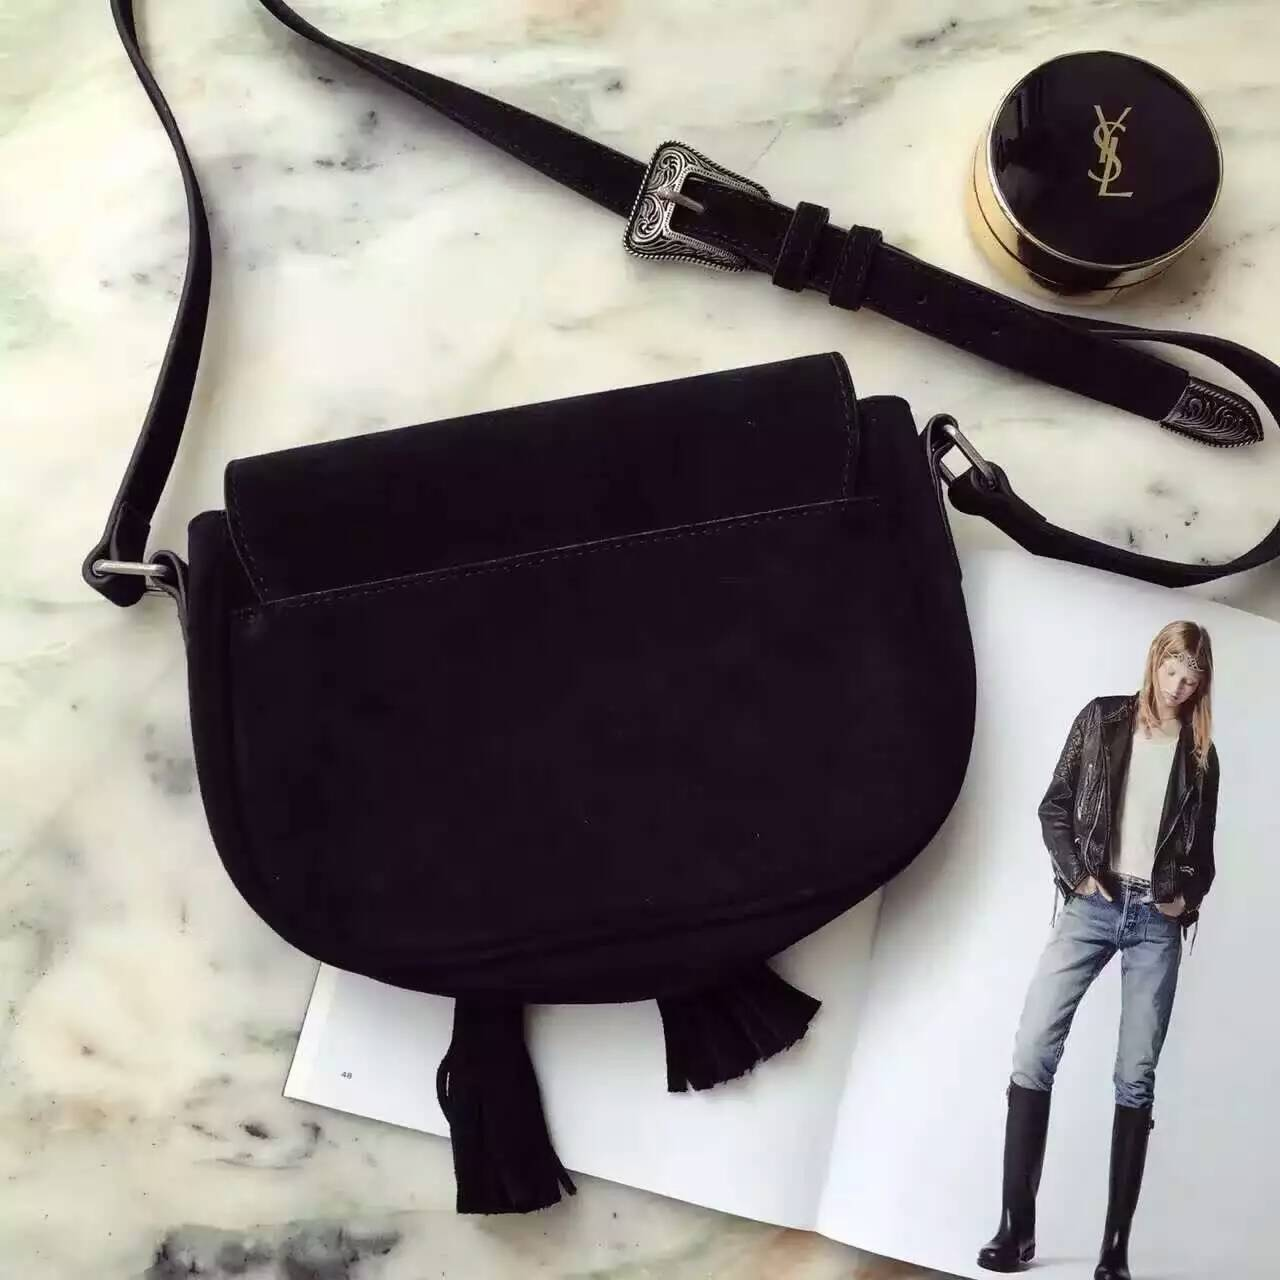 Limited Edition!2016 Saint Laurent Bags Cheap Sale-Saint Laurent Kim Cross Bag in Black suede Leather